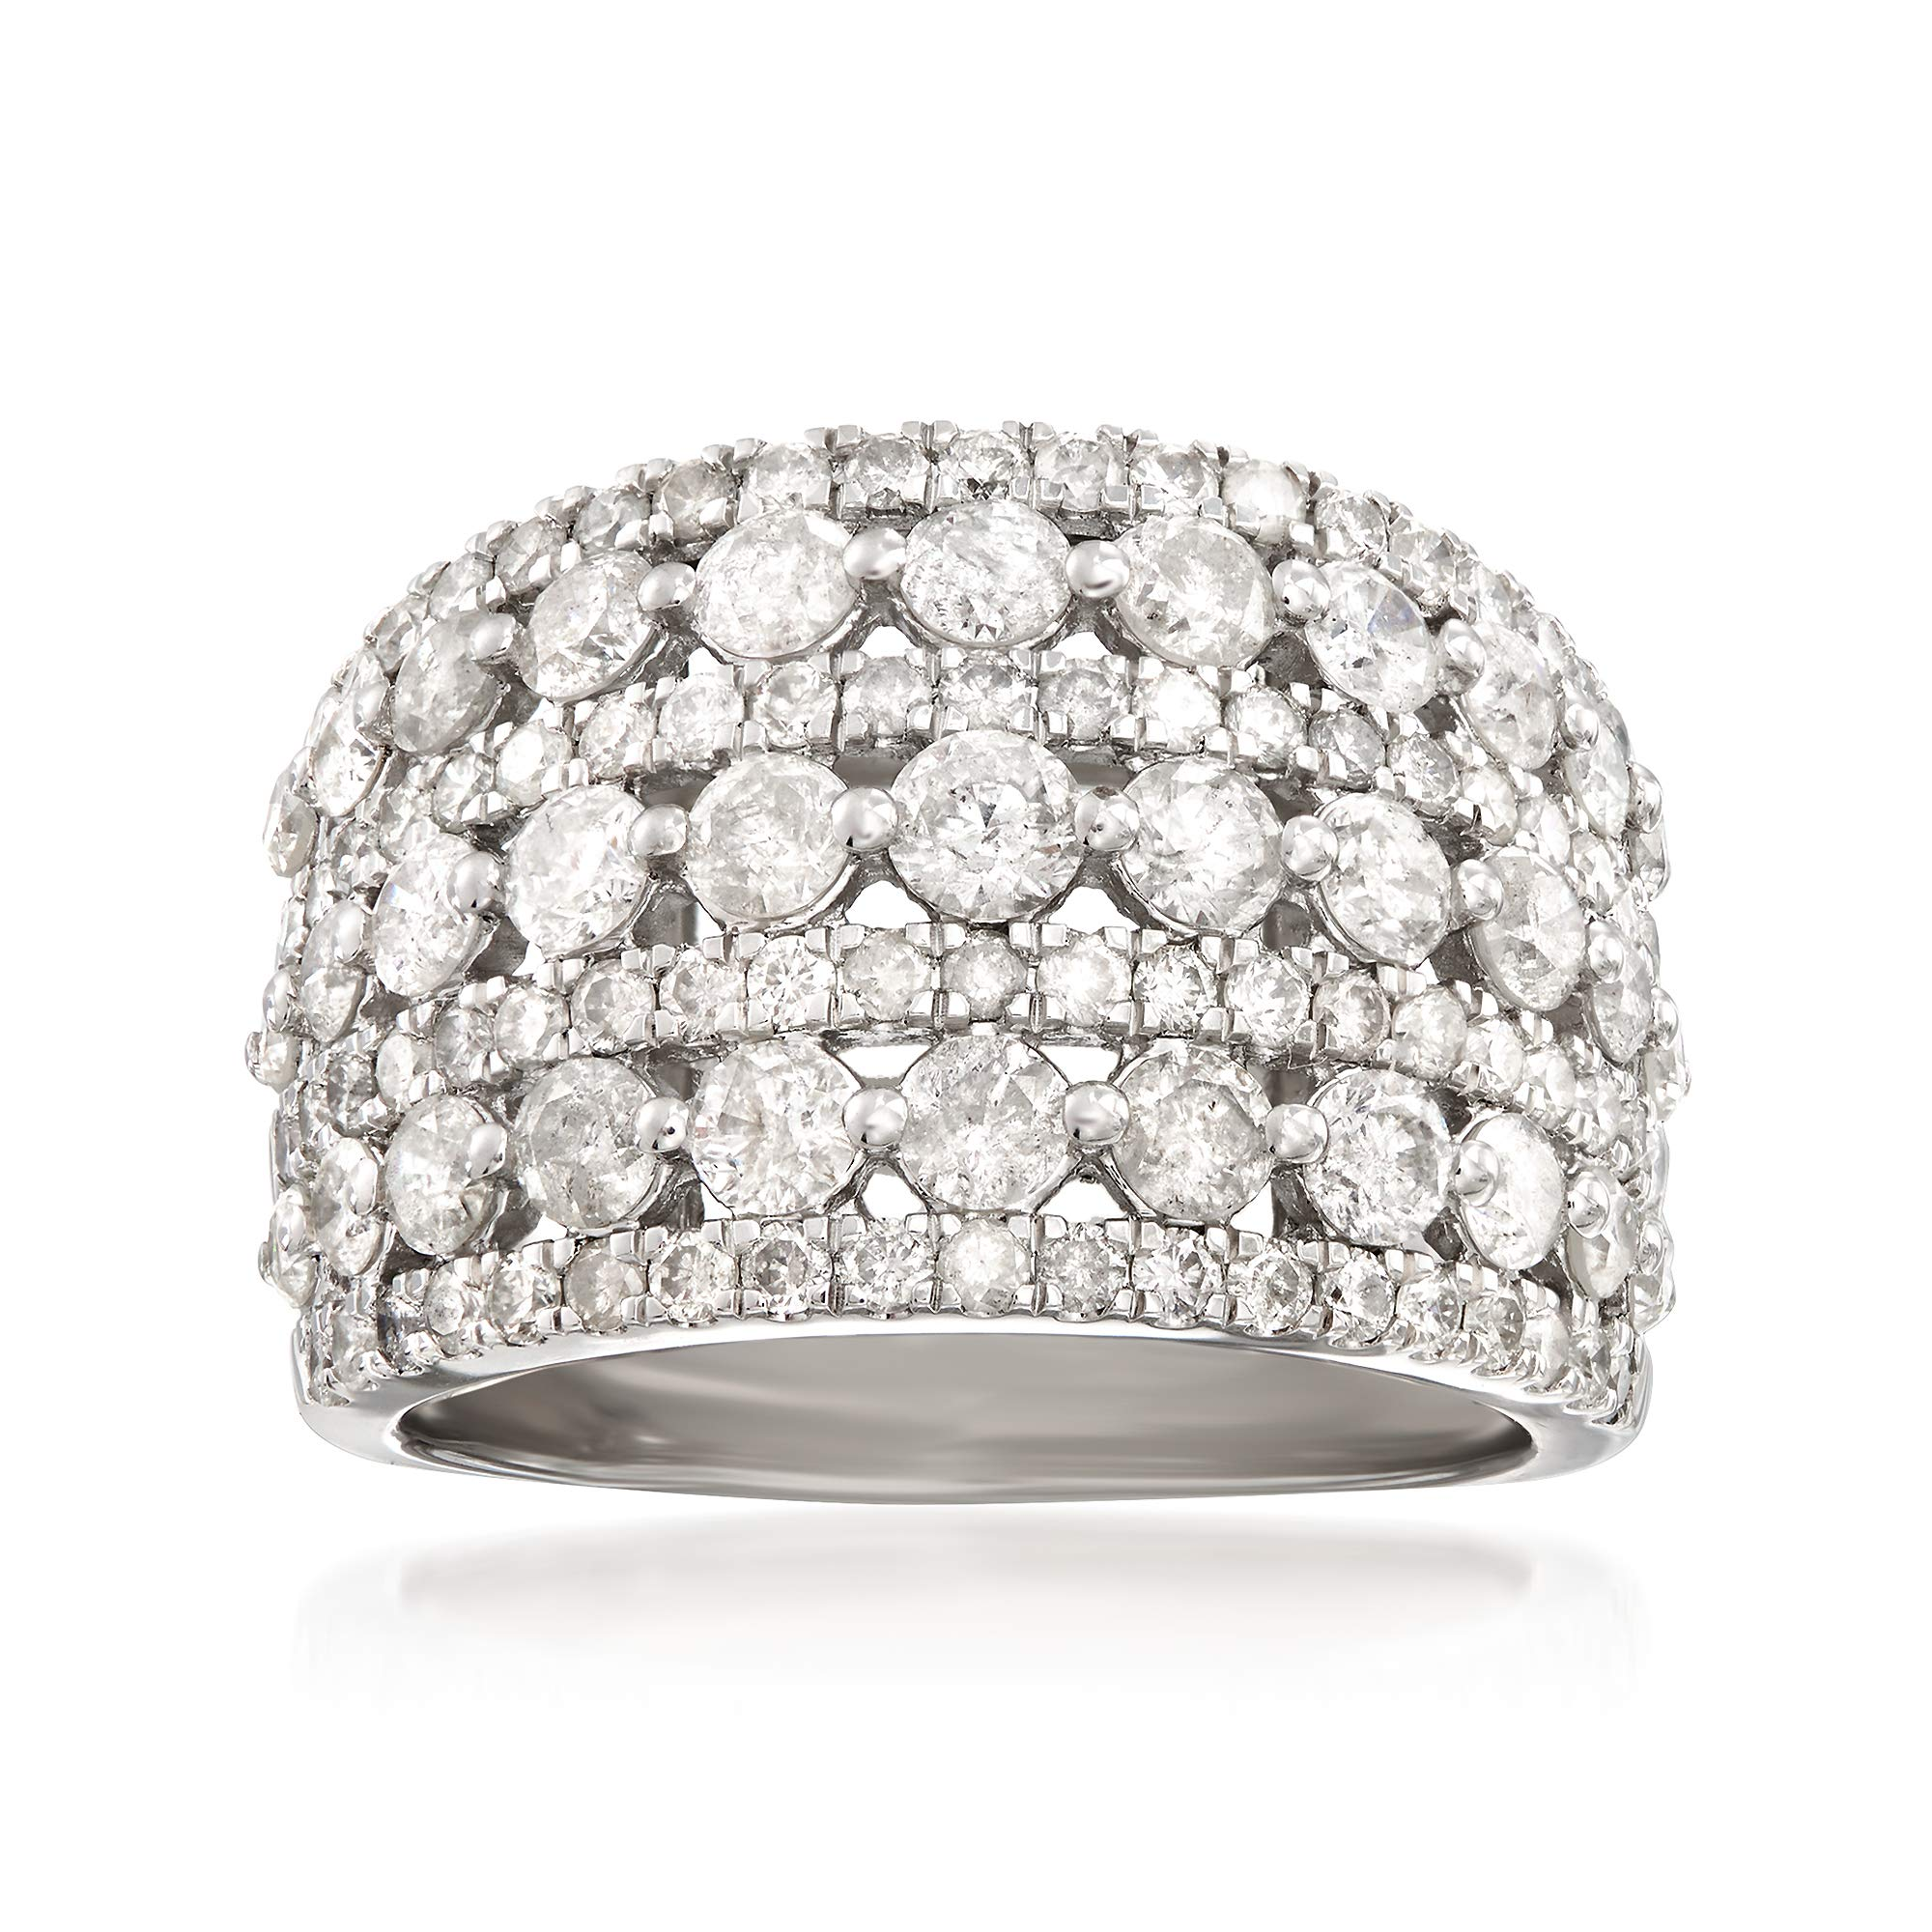 Ross-Simons 3.00 ct. t.w. Multi-Row Diamond Ring in Sterling Silver by Ross-Simons